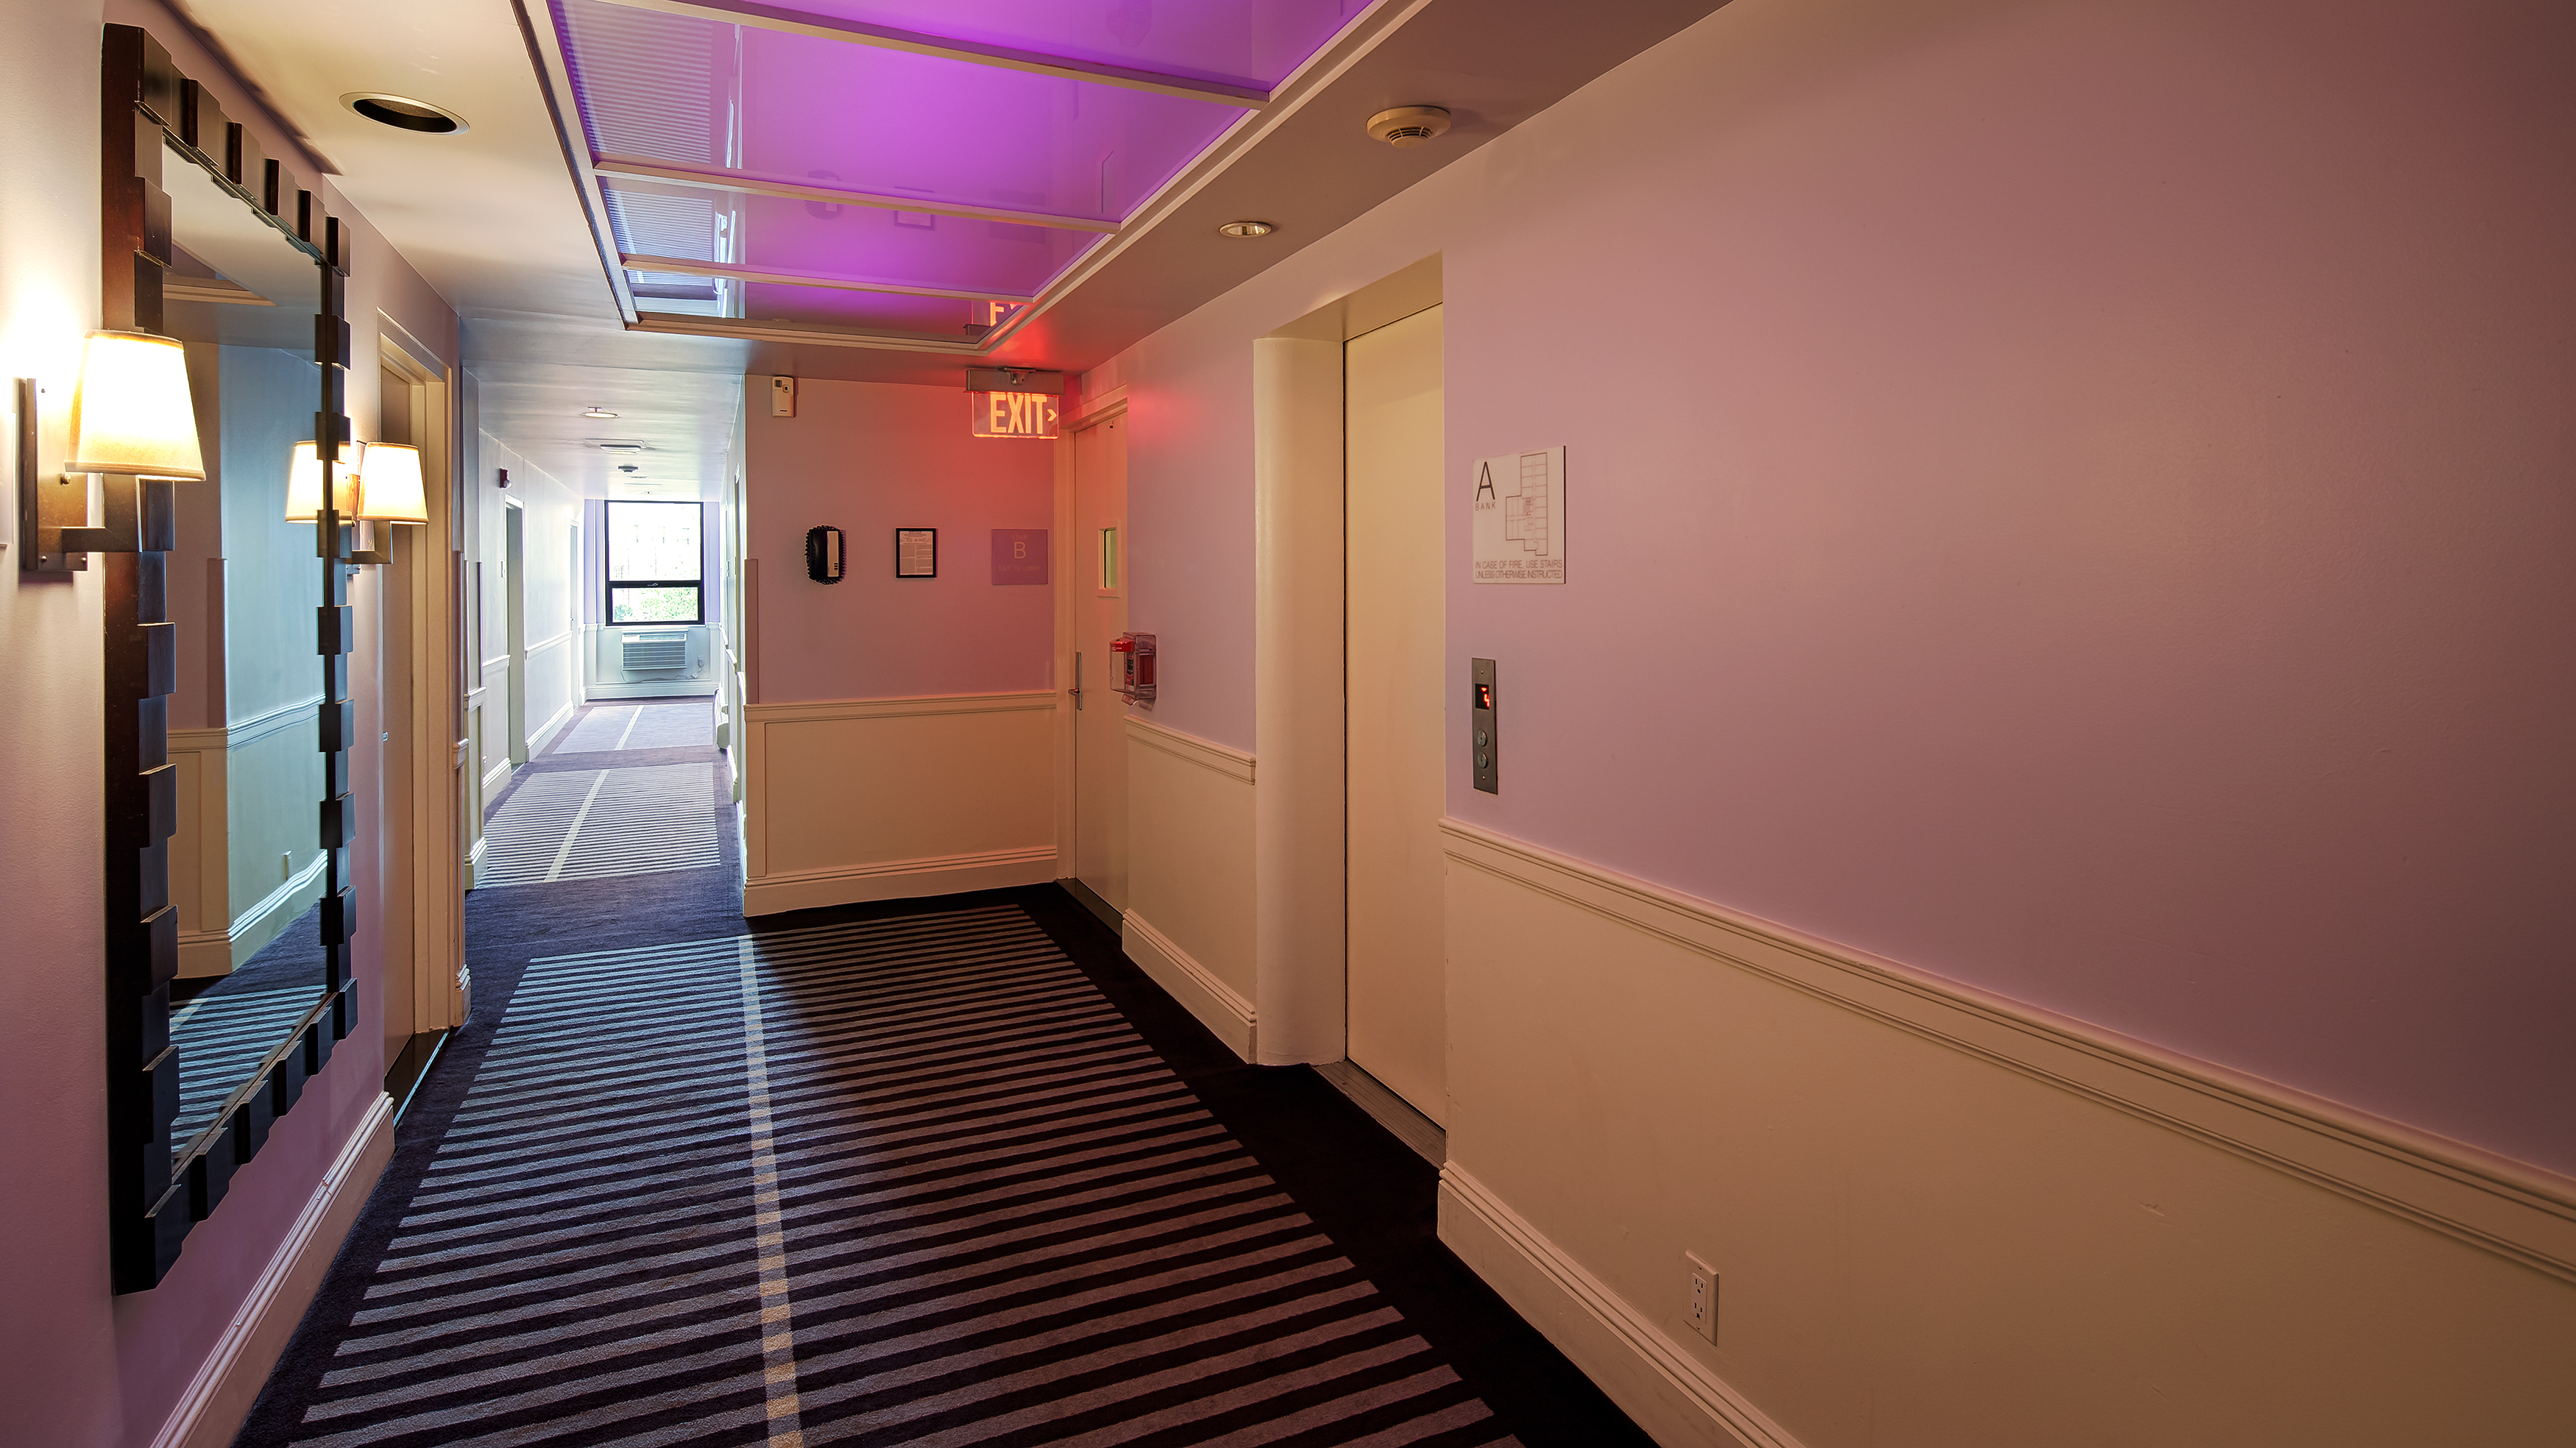 https://www.hotelsbyday.com/_data/default-hotel_image/0/4202/hallway.jpg